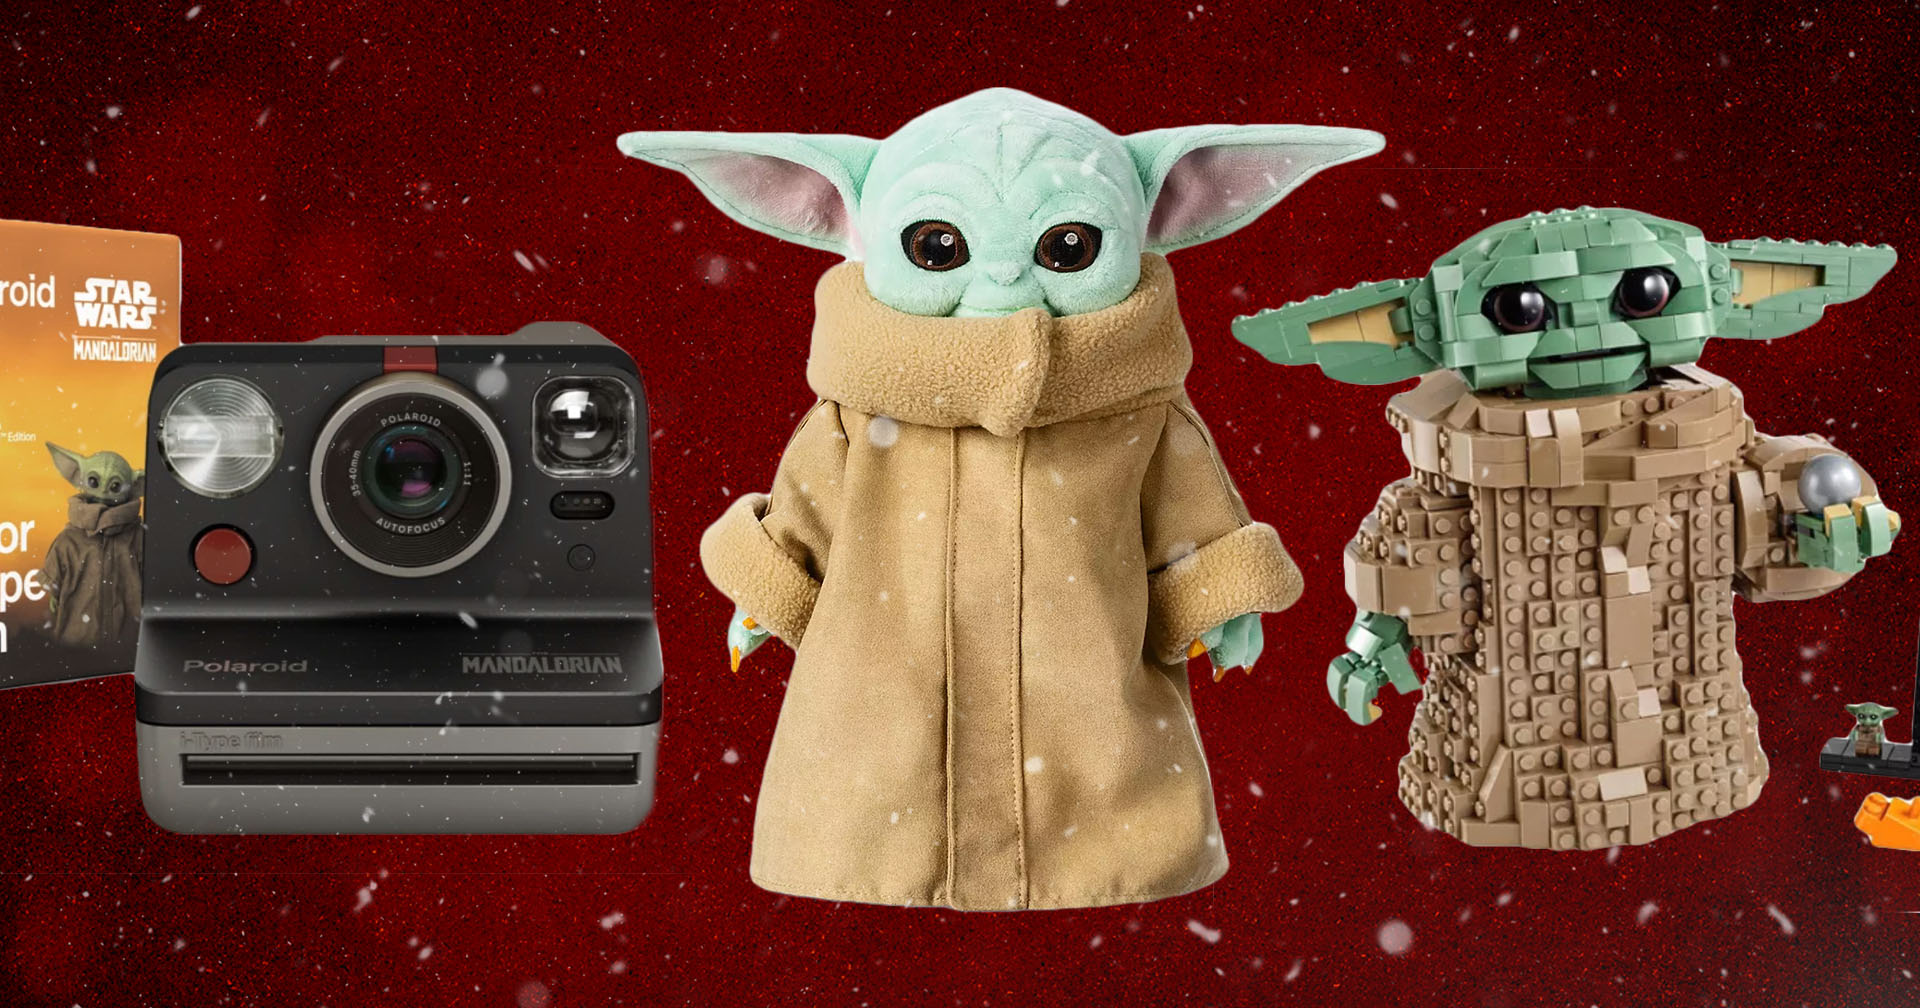 Baby Yoda cameras, plush toys and legos